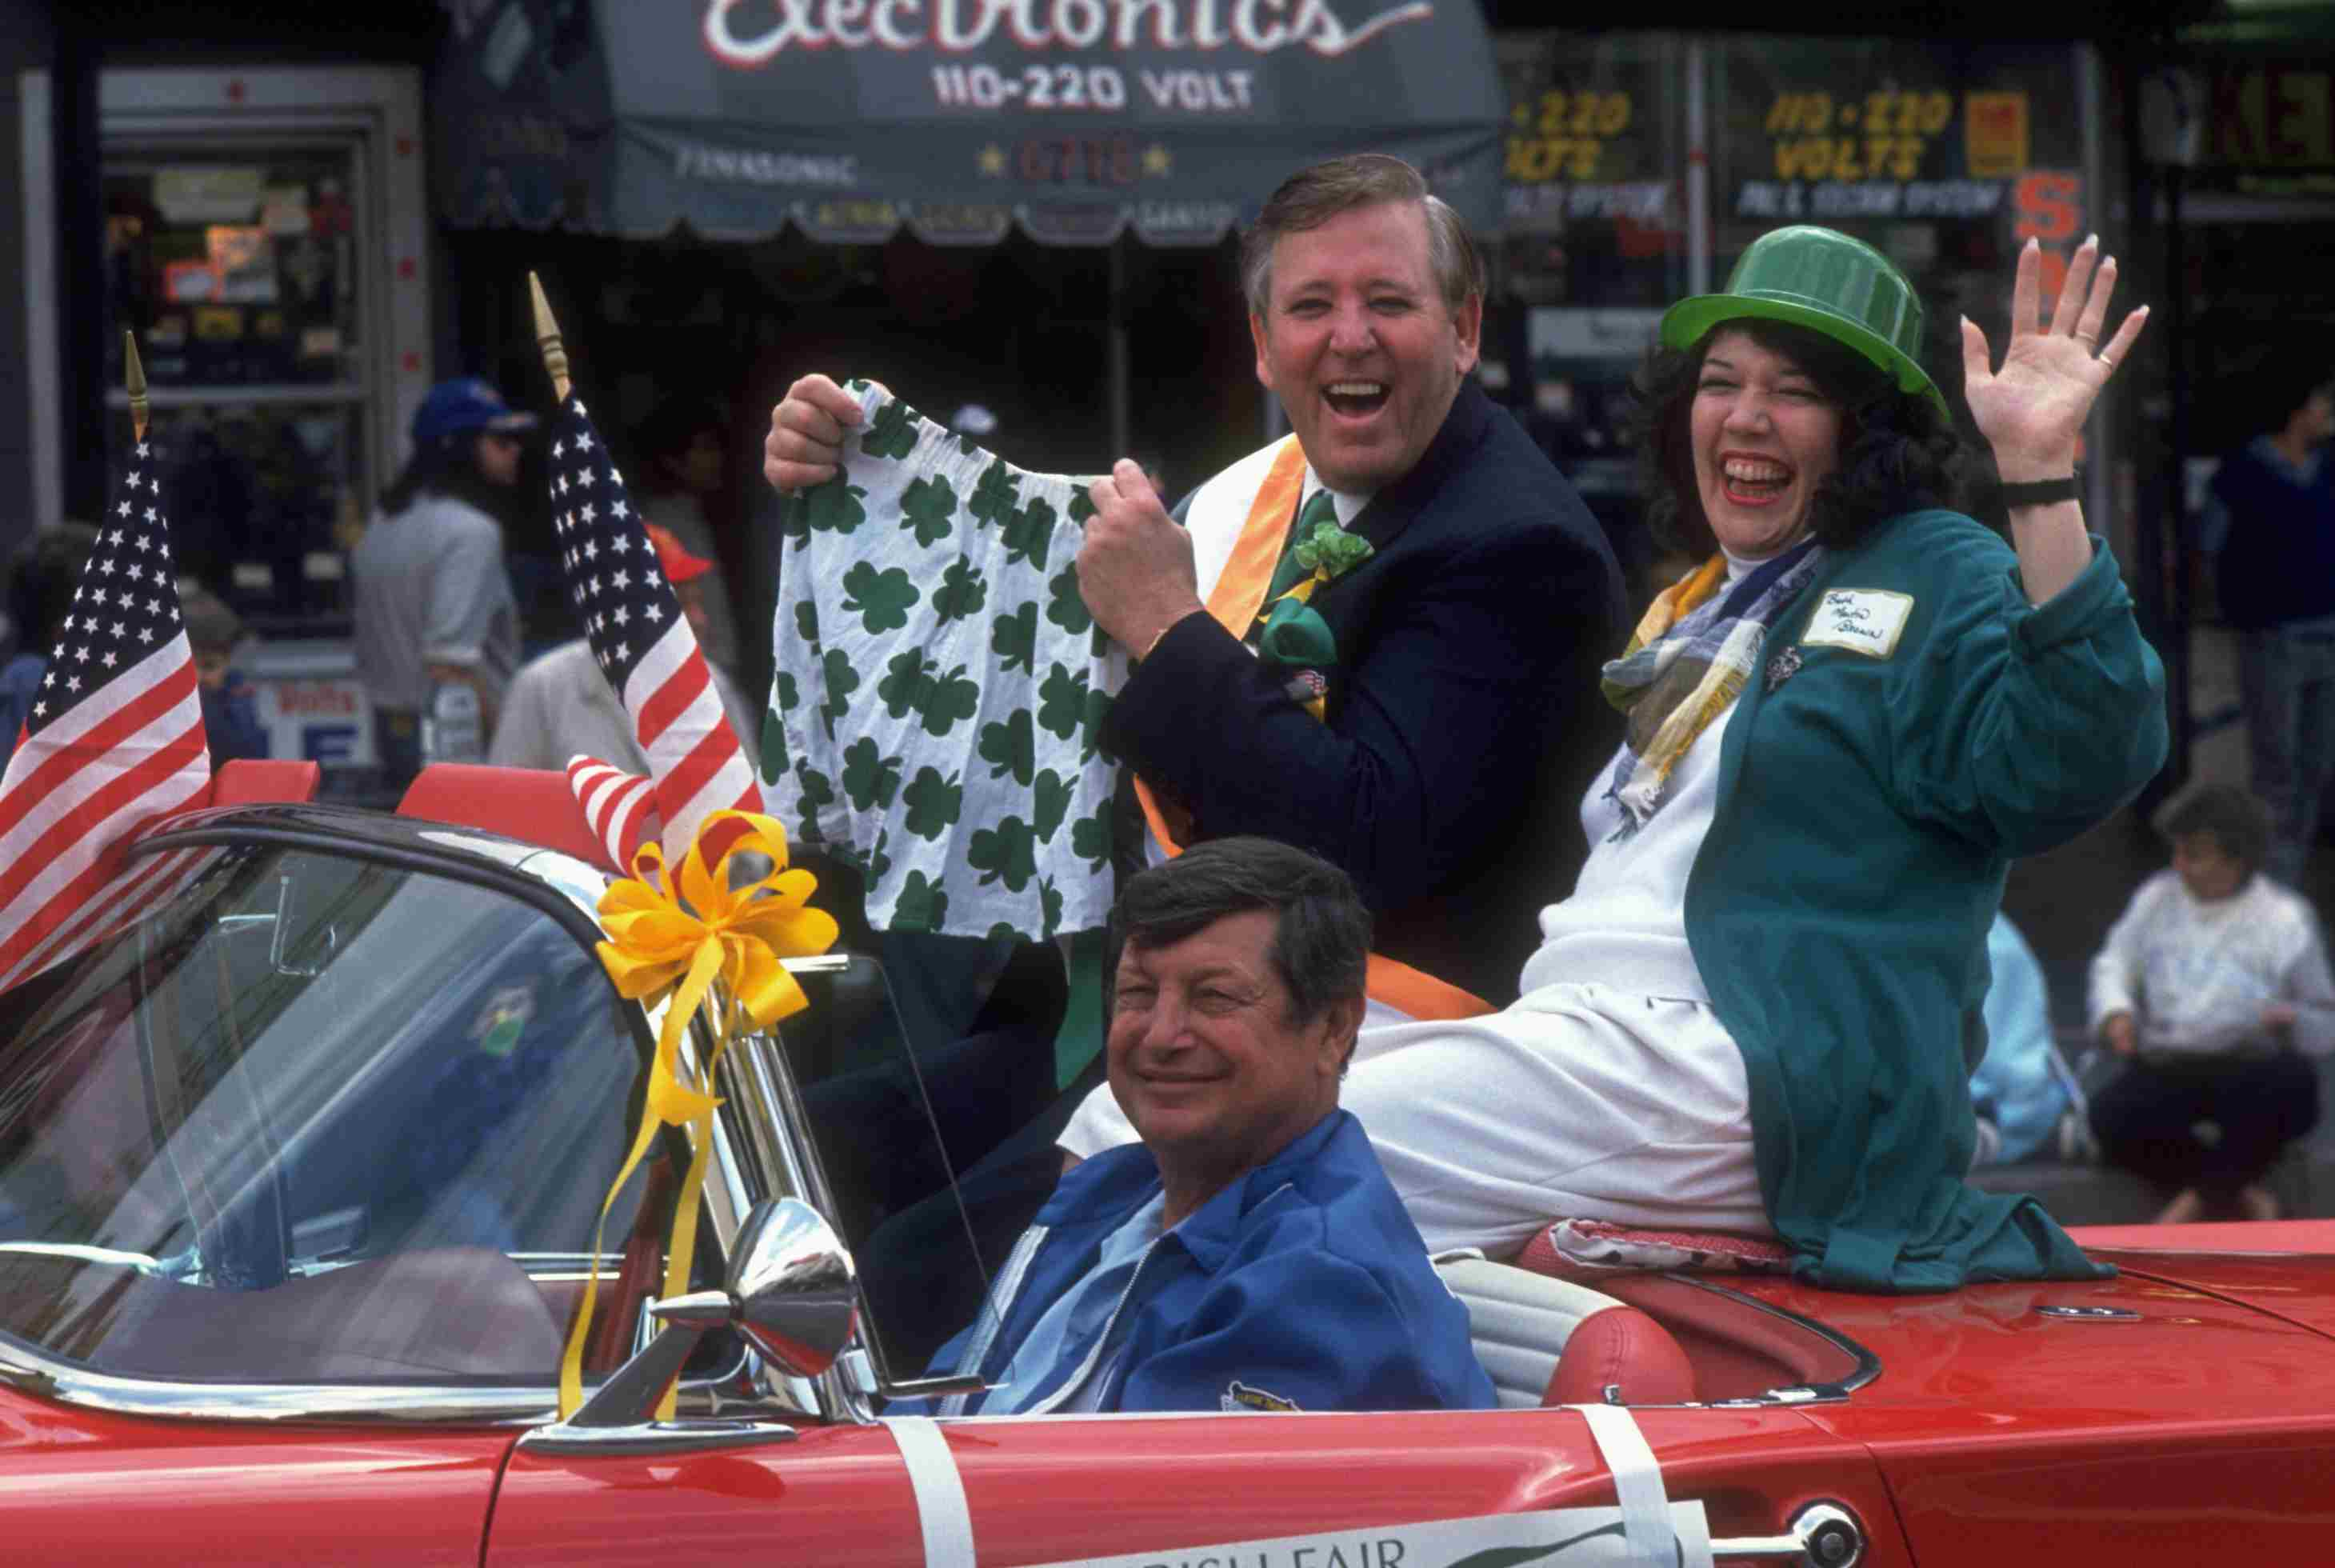 St. Patrick's Day Parade in Los Angeles